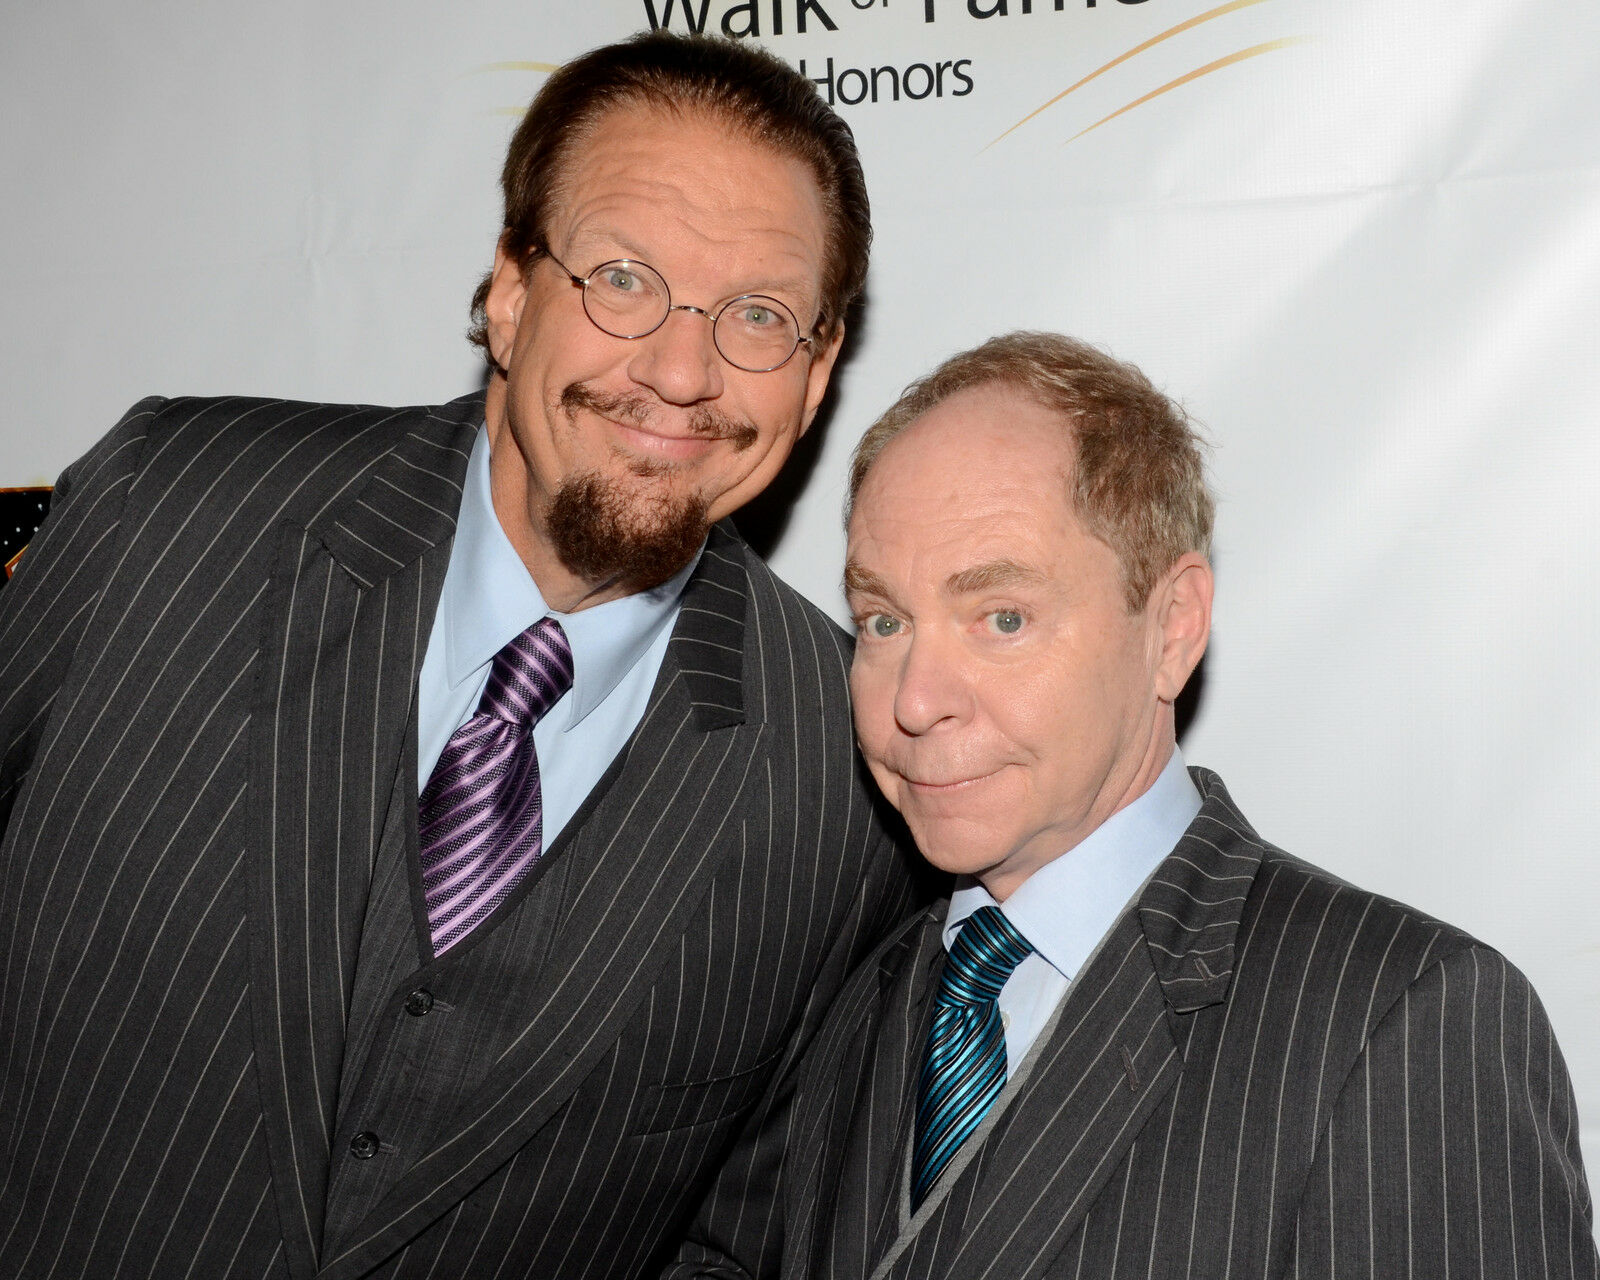 teller of penn and teller